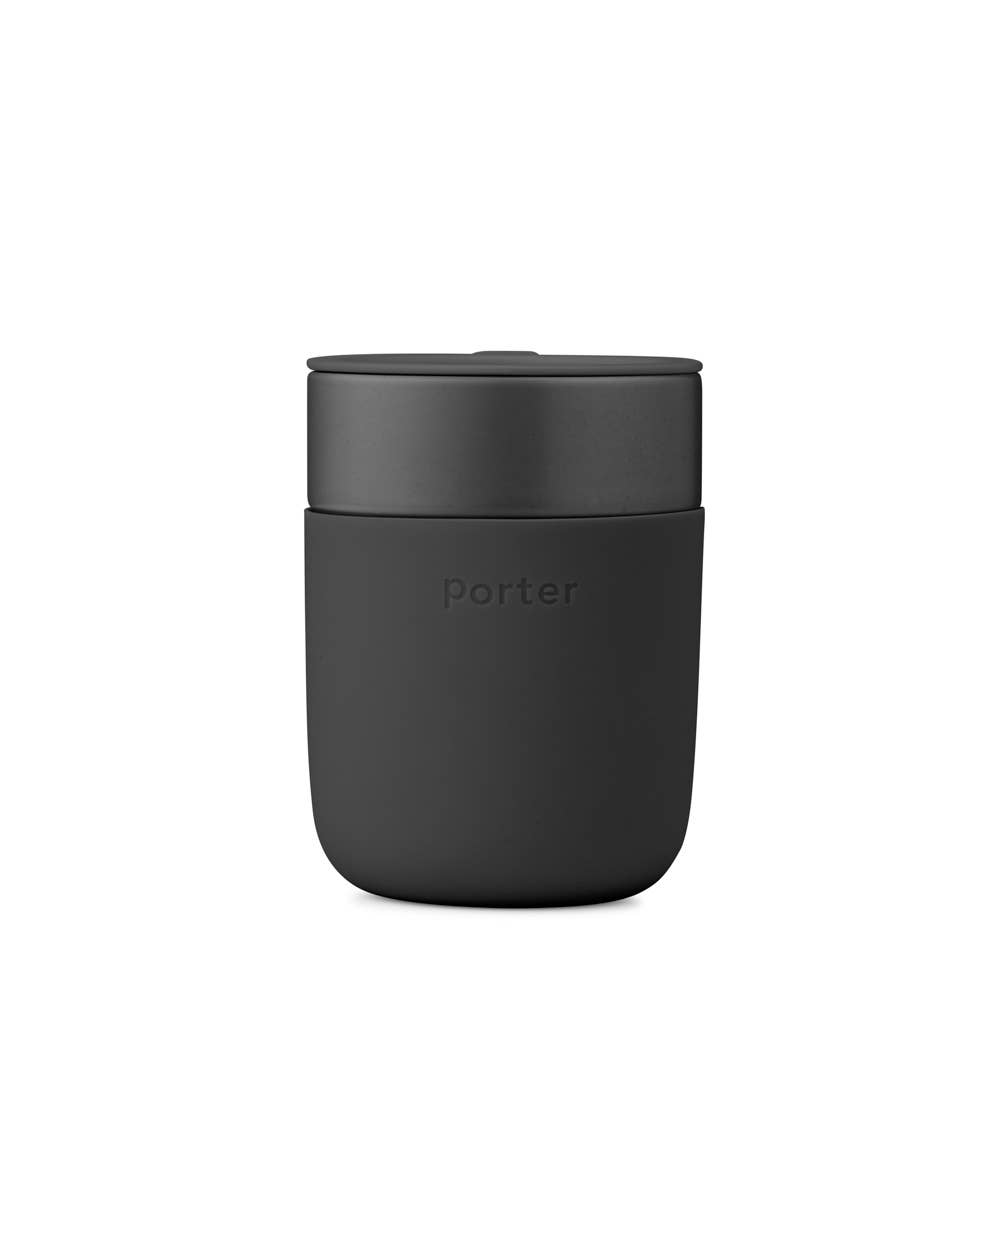 Porter Ceramic Mug 12oz - Charcoal Gray